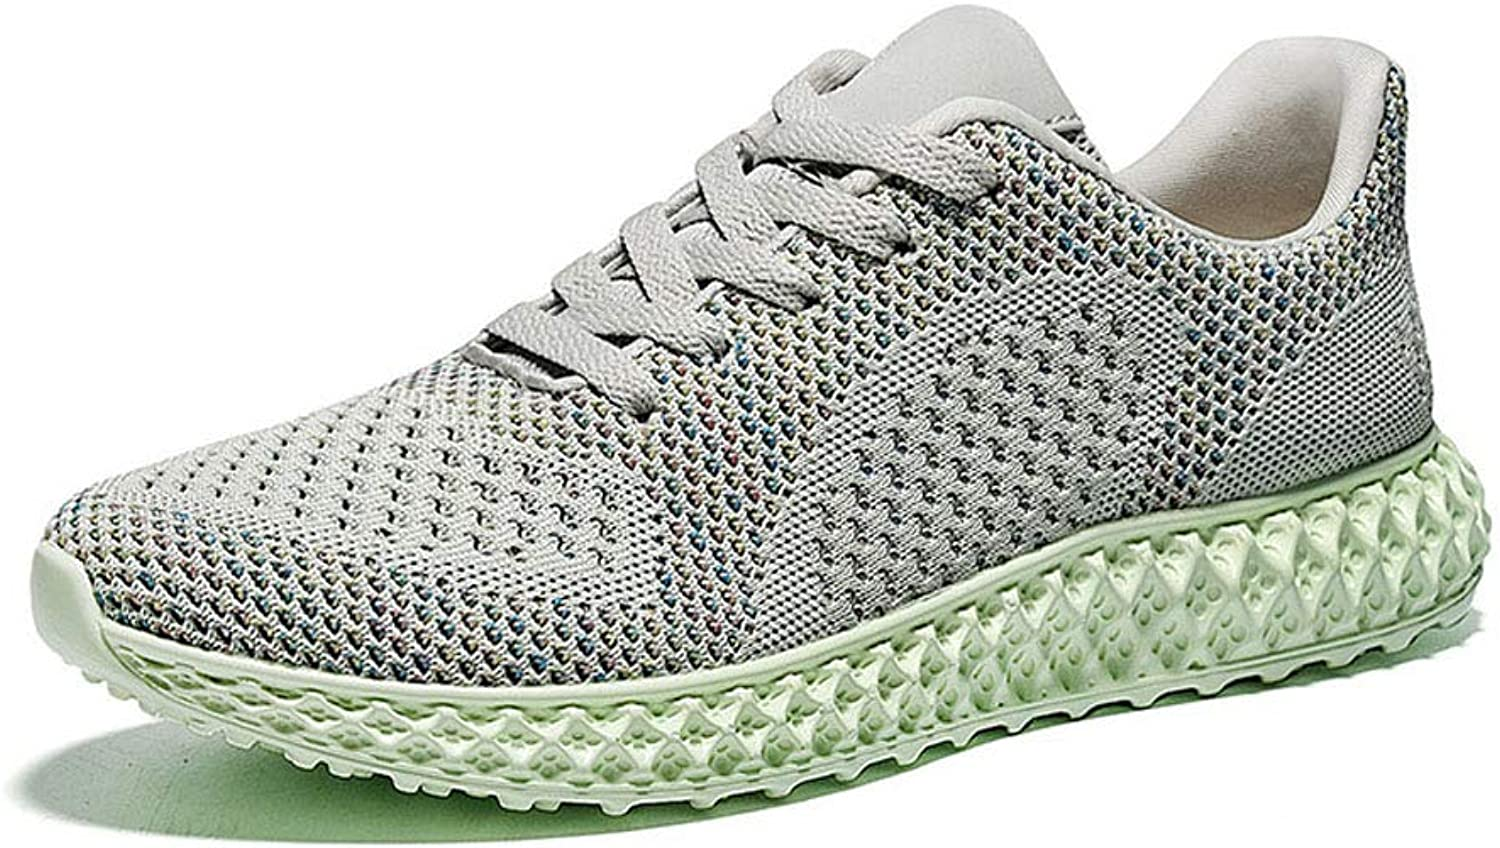 FFSH Sports shoes Fly Woven lace Casual shoes Breathable Sports Fitness Running shoes-grey-41